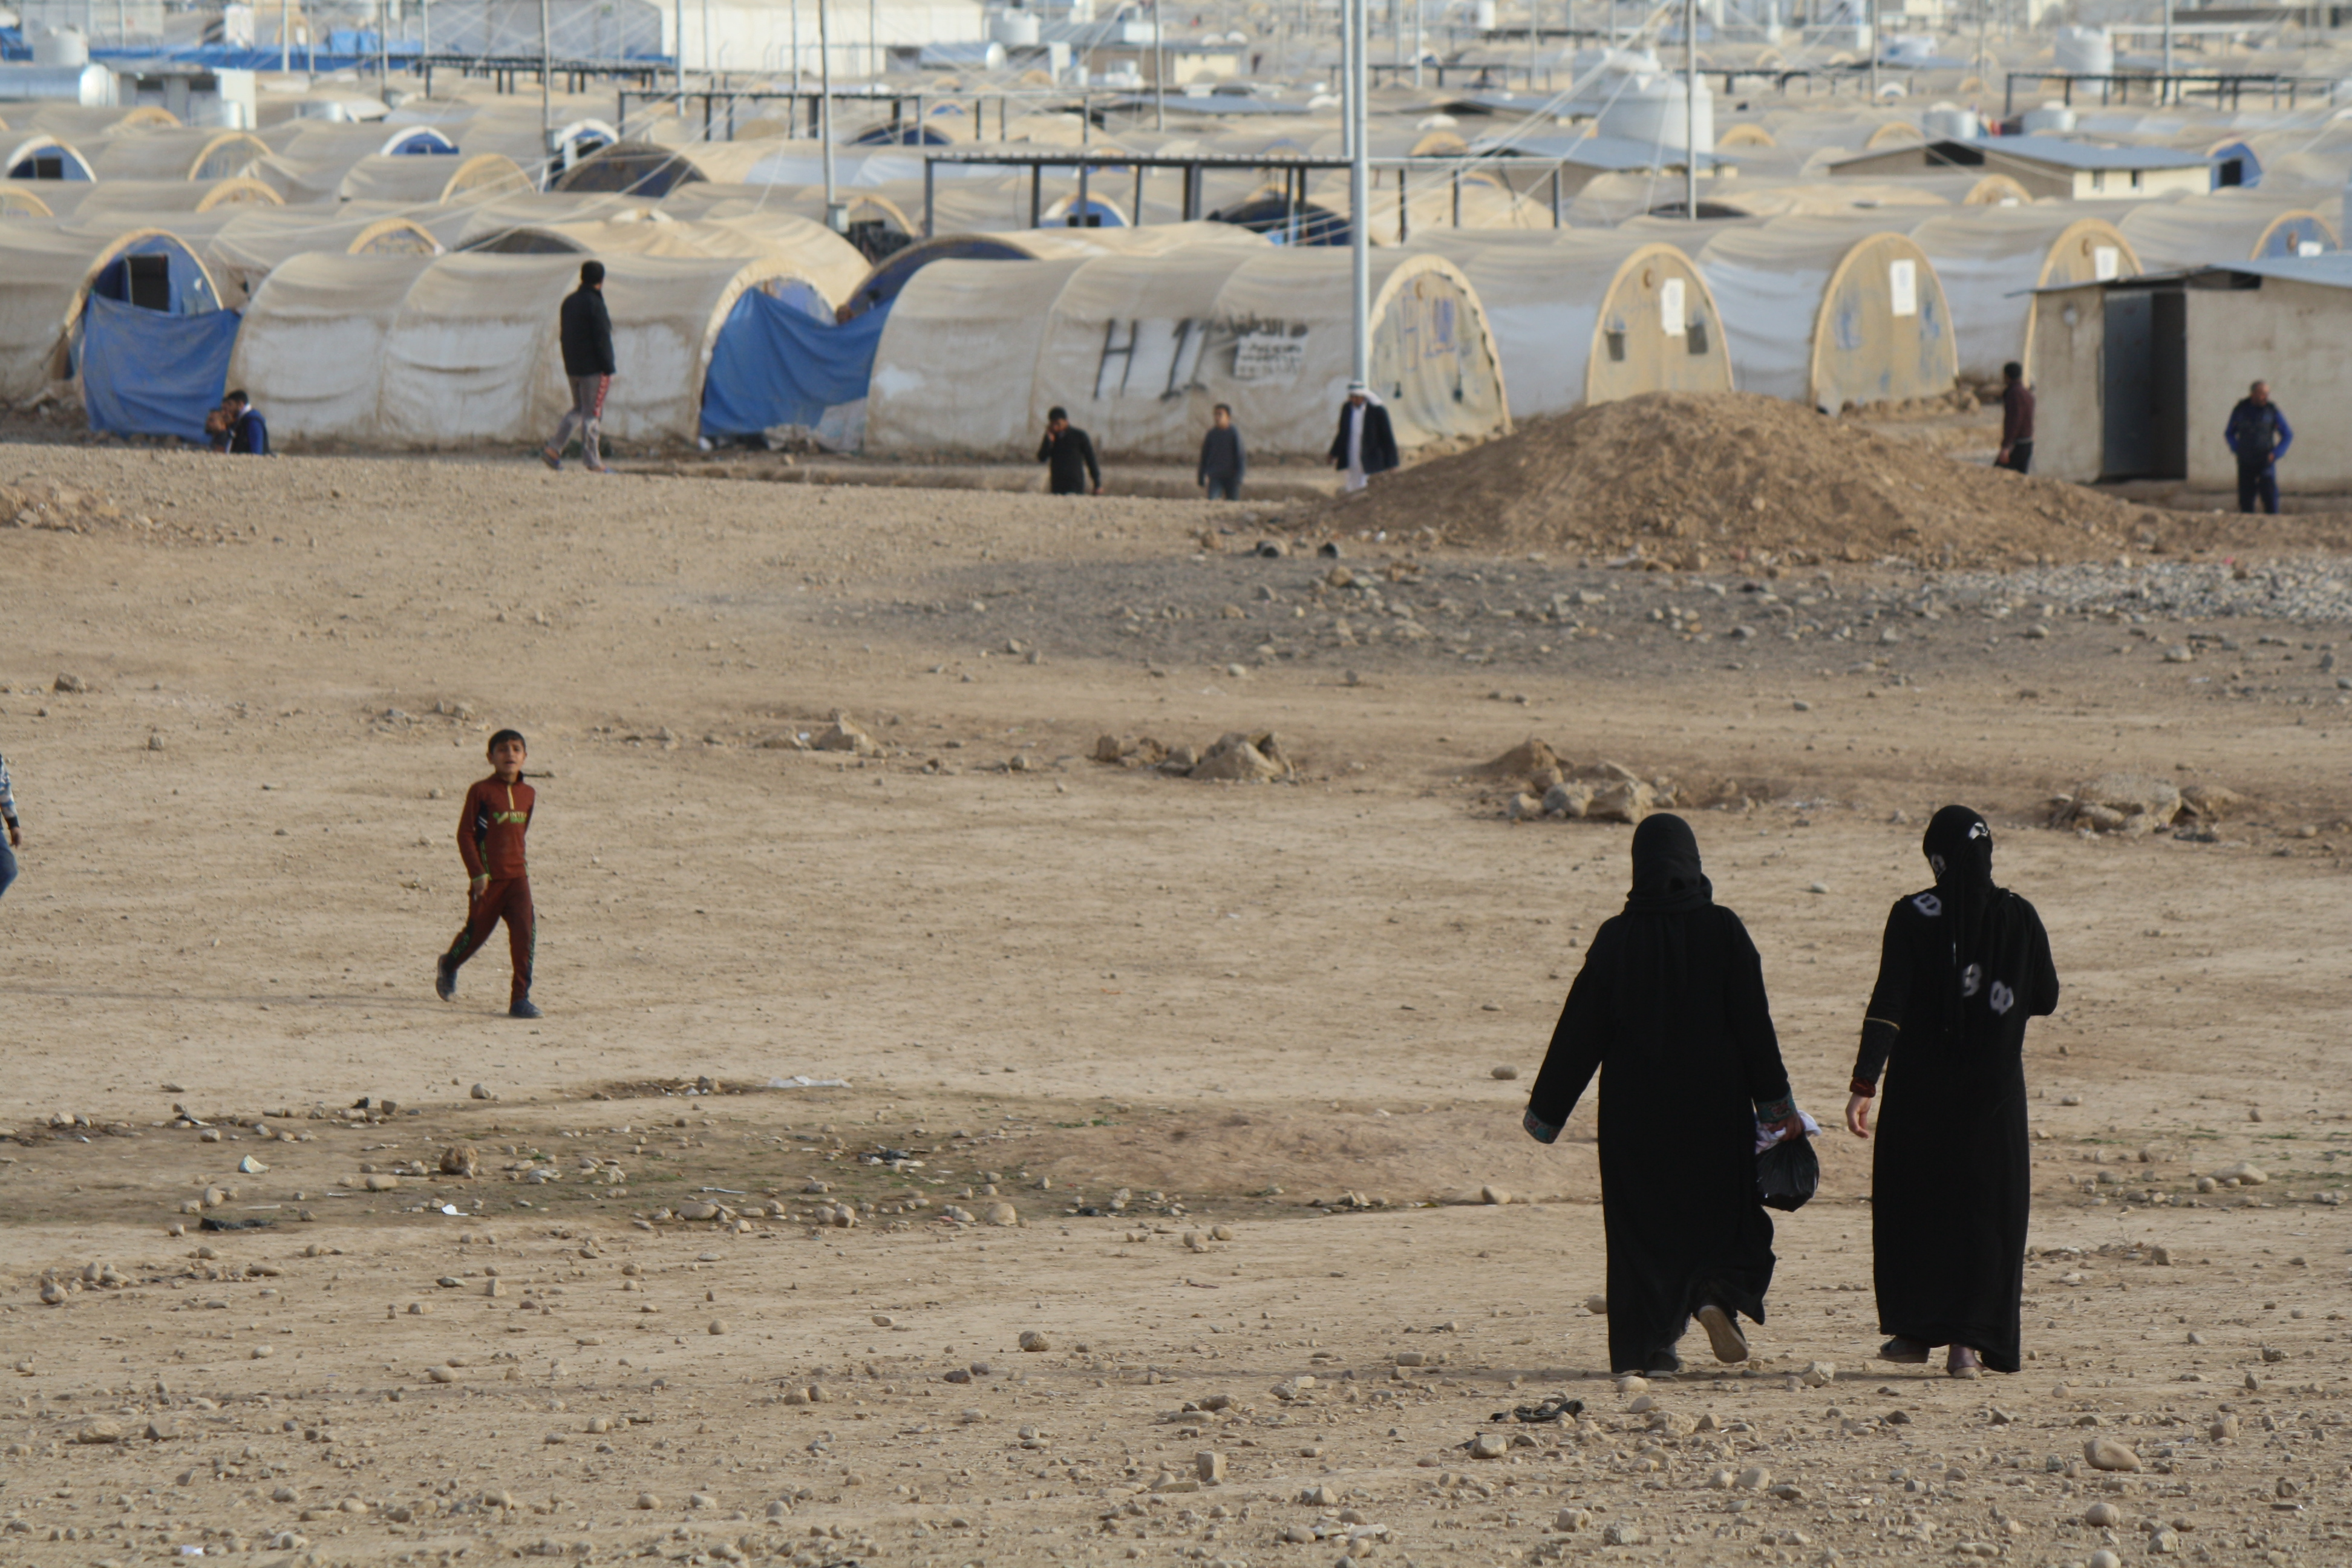 Wives of killed or captured IS fighters often continue to cover themselves in black veils in the Haj Ali camp in Northern Iraq, Dec. 27, 2017.